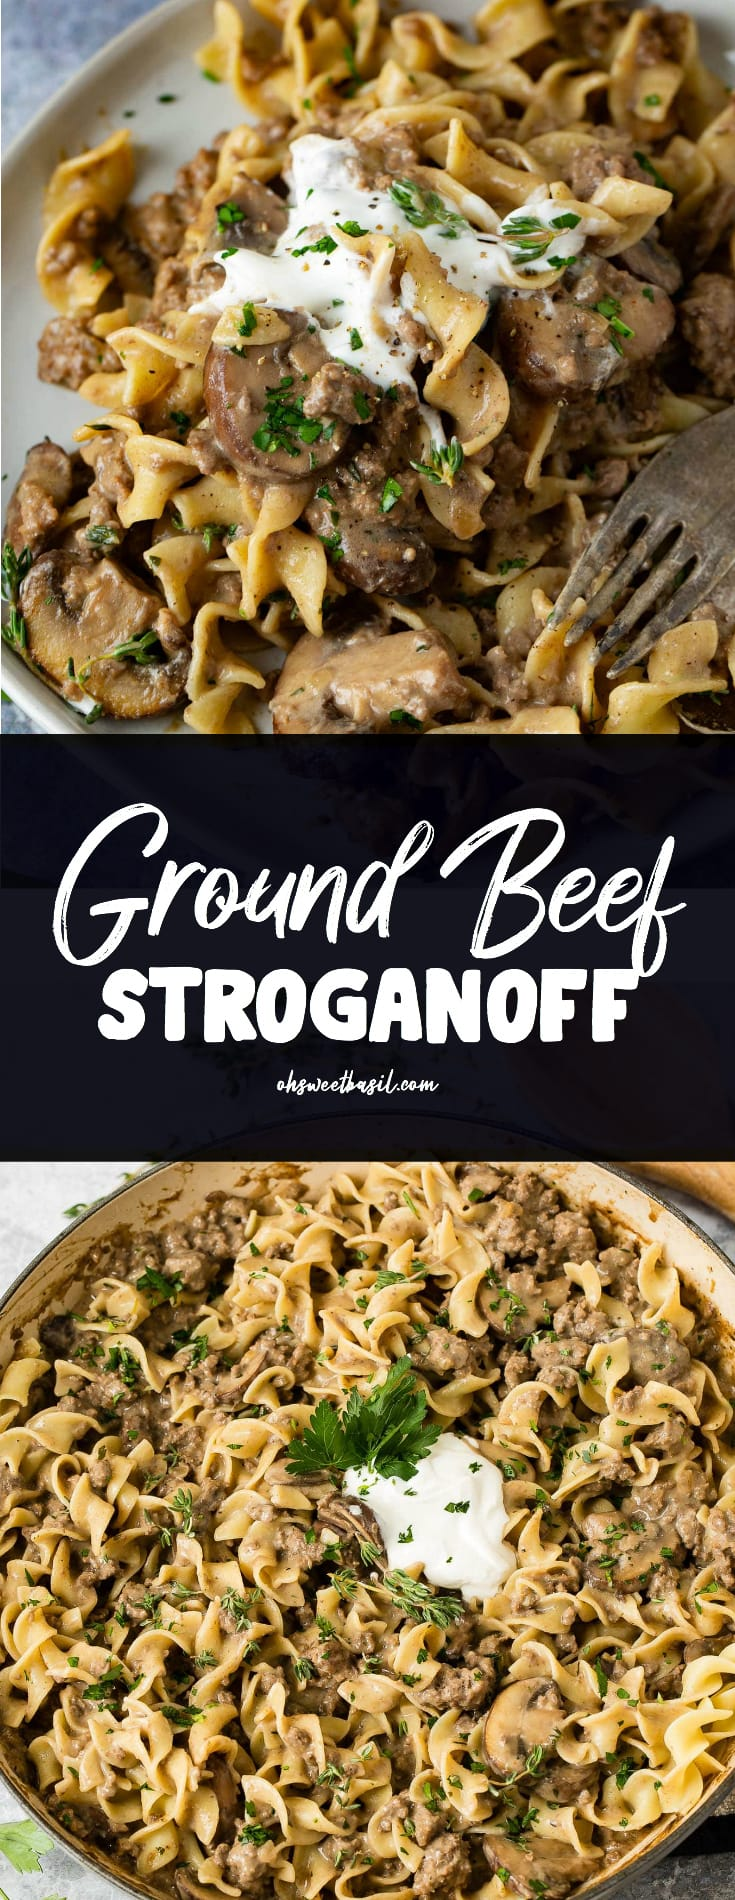 ground beef stroganoff in a serving bowl. There are noodles, and ground beef in a sauce, with a spoonful of sour cream on top.